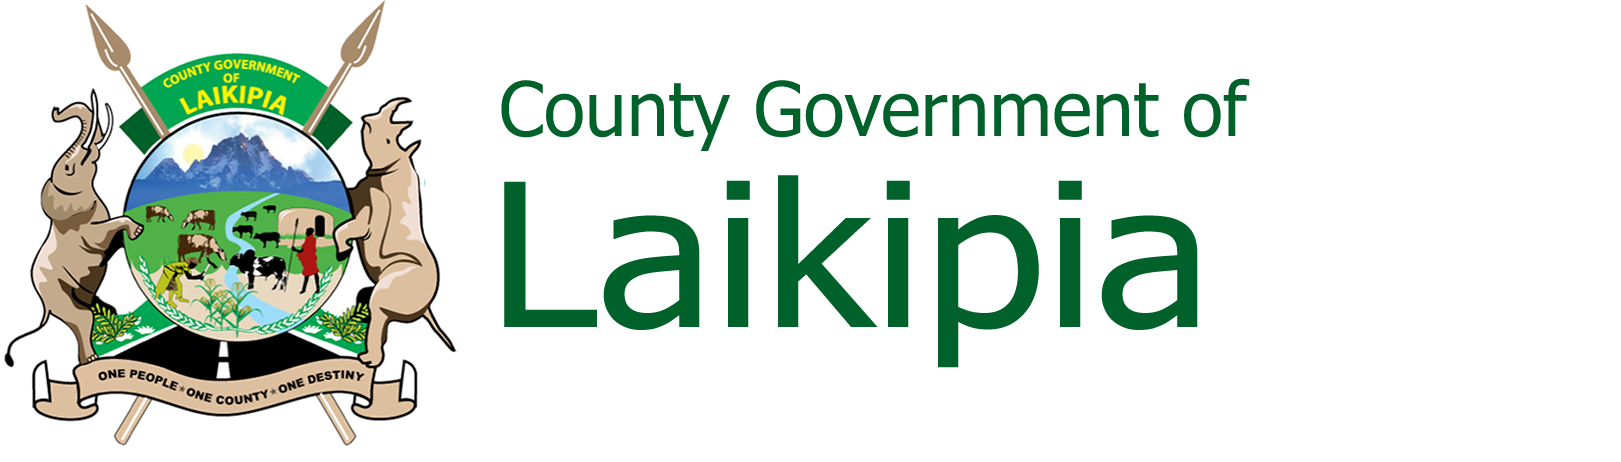 County Government of Laikipia